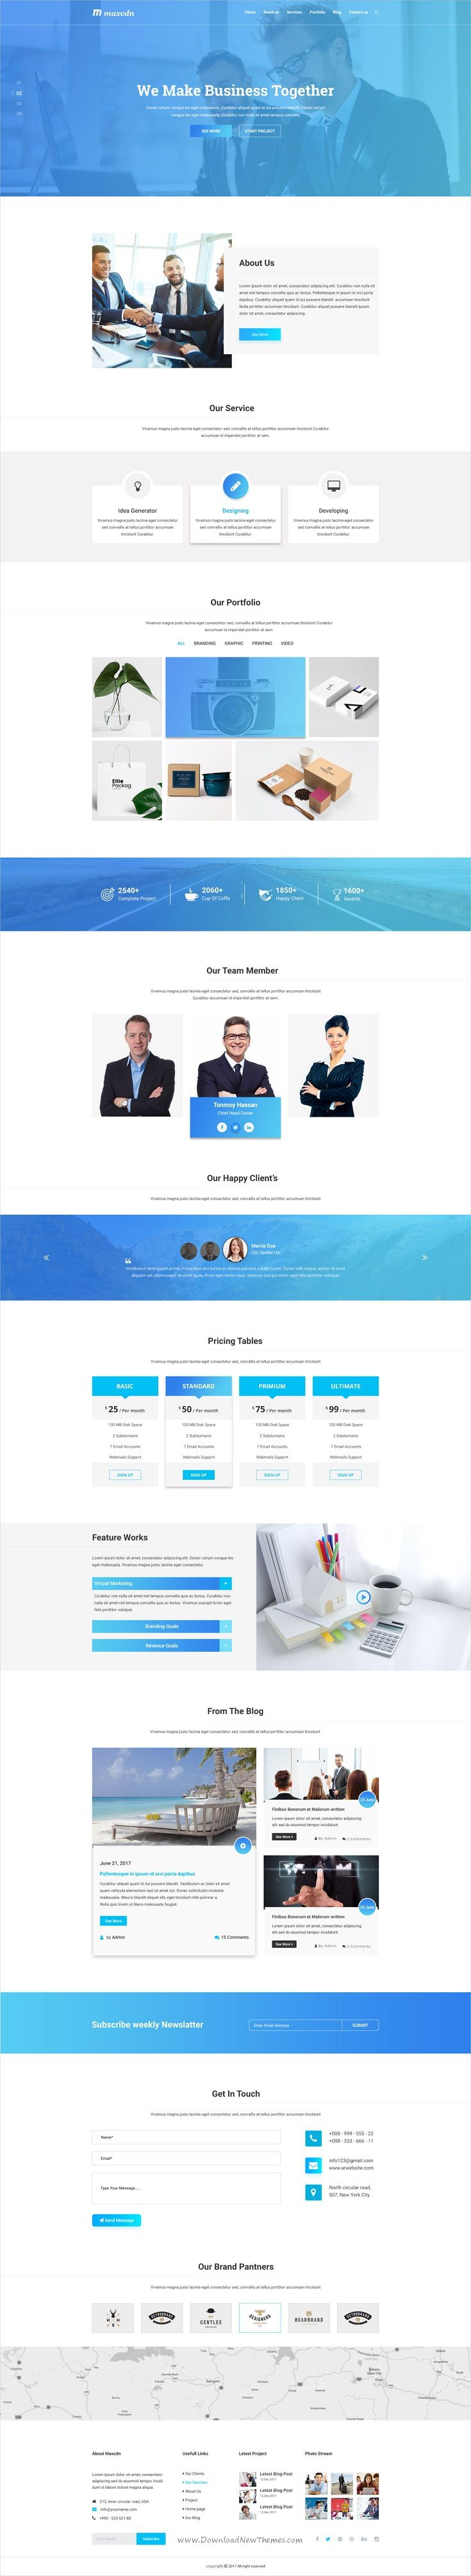 Maxcdn is clean and modern design #PSD template for onepage creative #business agencies website download now..